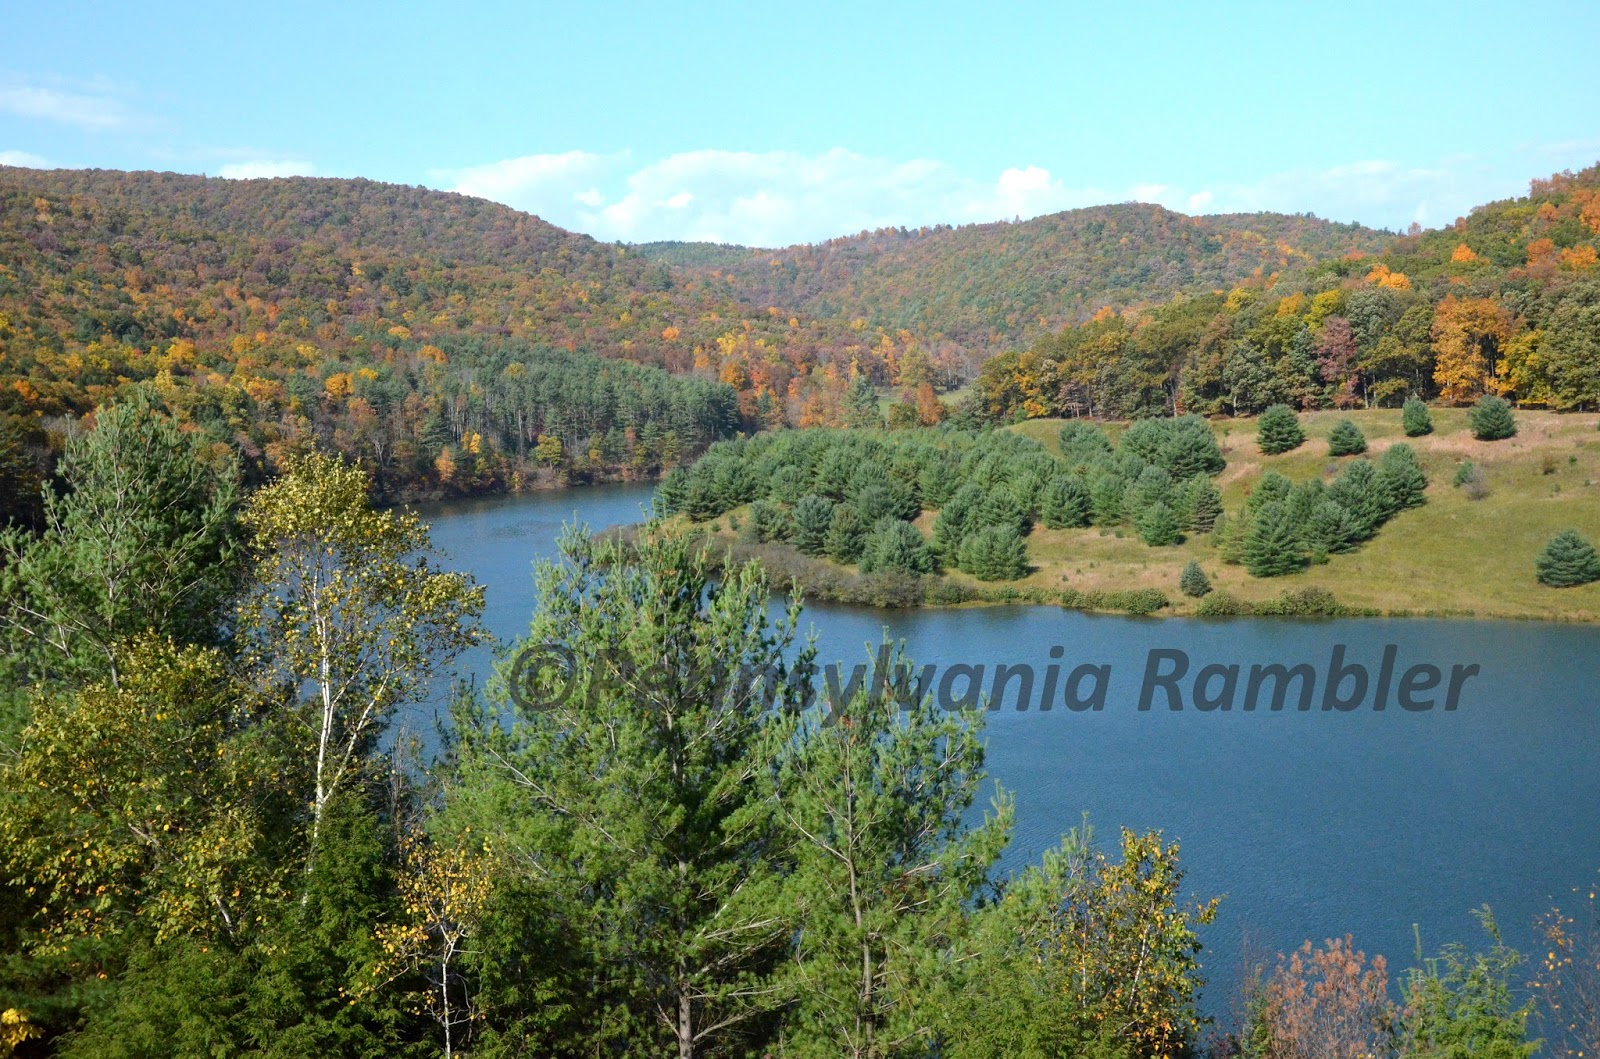 The Pennsylvania Rambler The Kettle Creek Project